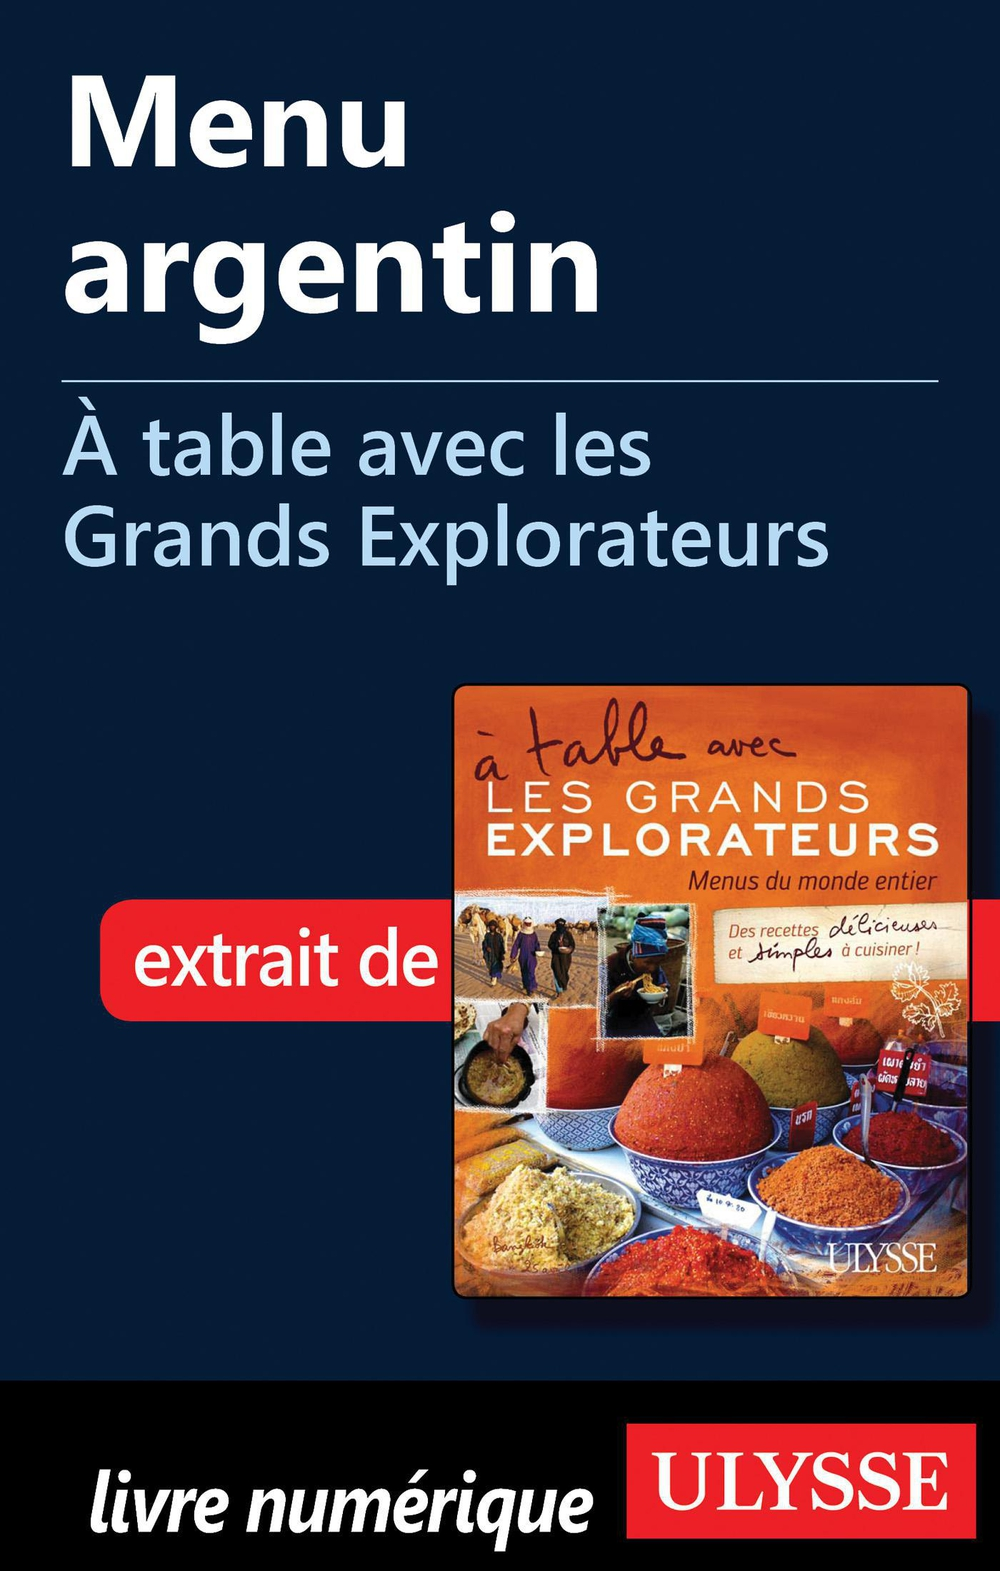 Menu argentin - À table avec les Grands Explorateurs By: Amy Arnold,Étienne Trépanier